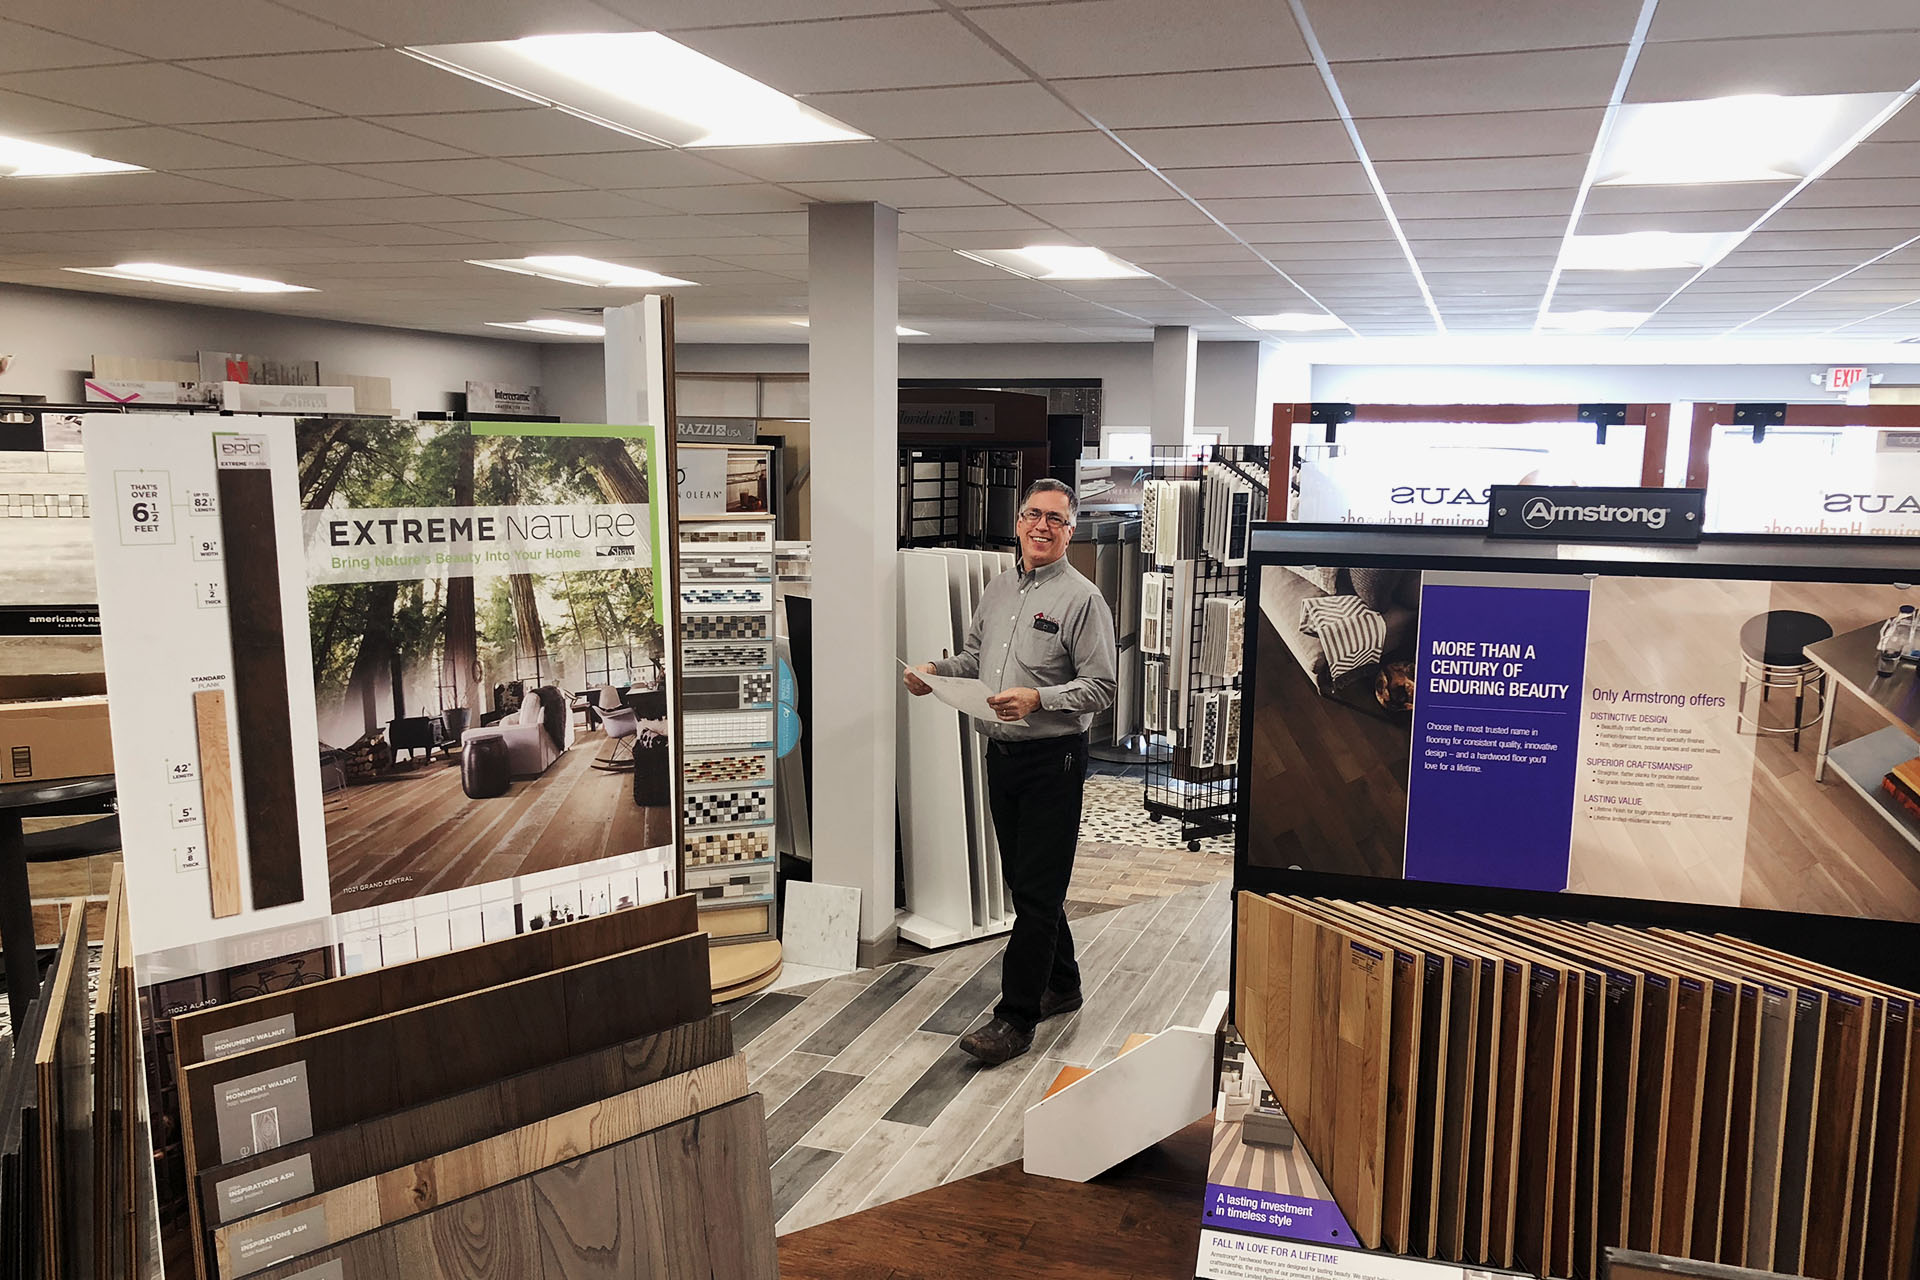 6705-2-after-lee-showroom-march-2019-dandsflooring.jpg